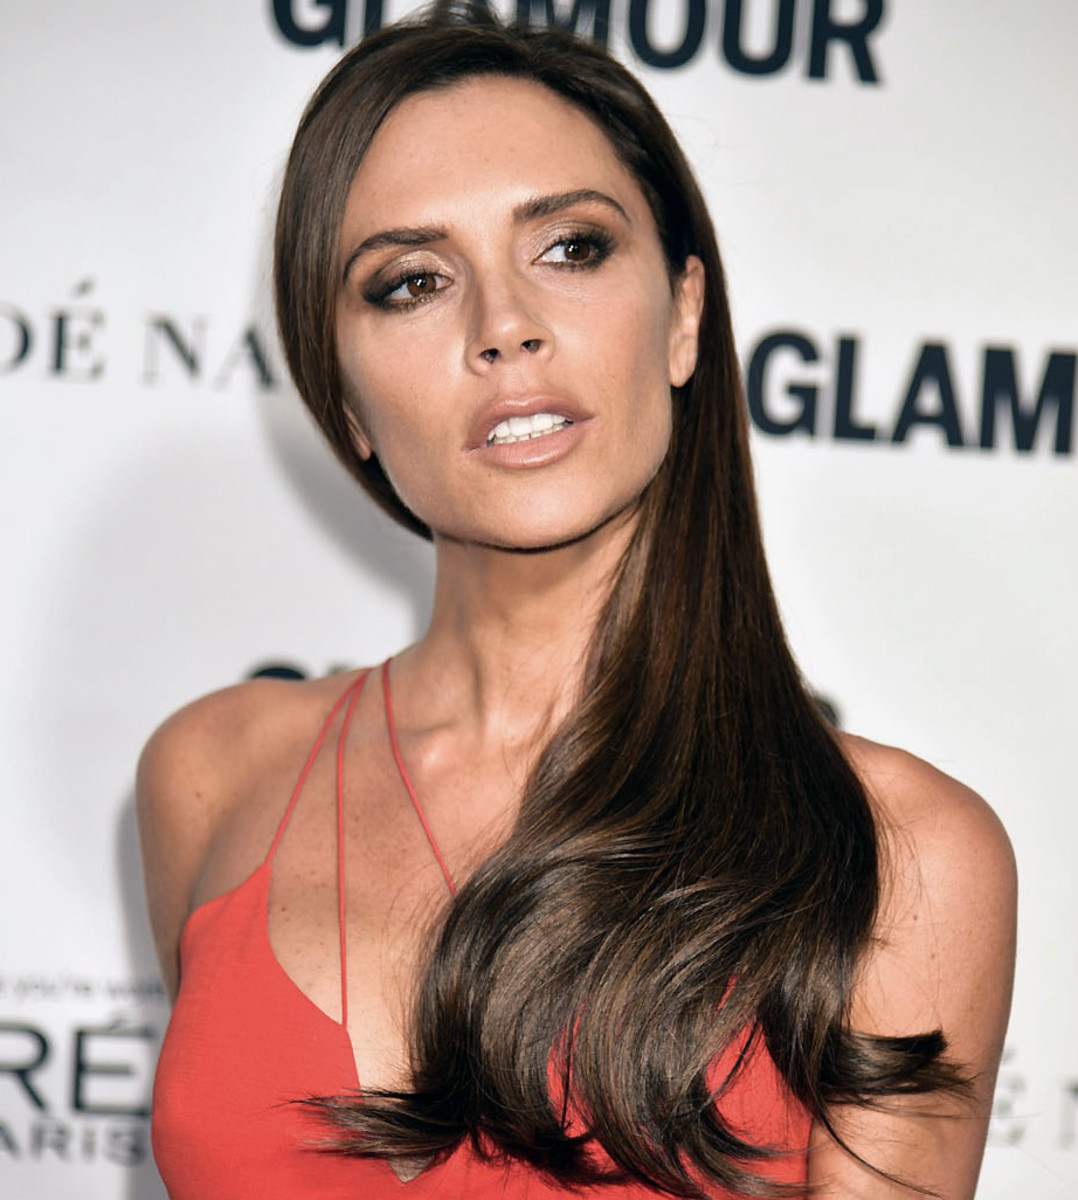 Victoria Beckham has collaborated with Estee Lauder on a limited-edition makeup collection launching this Fall